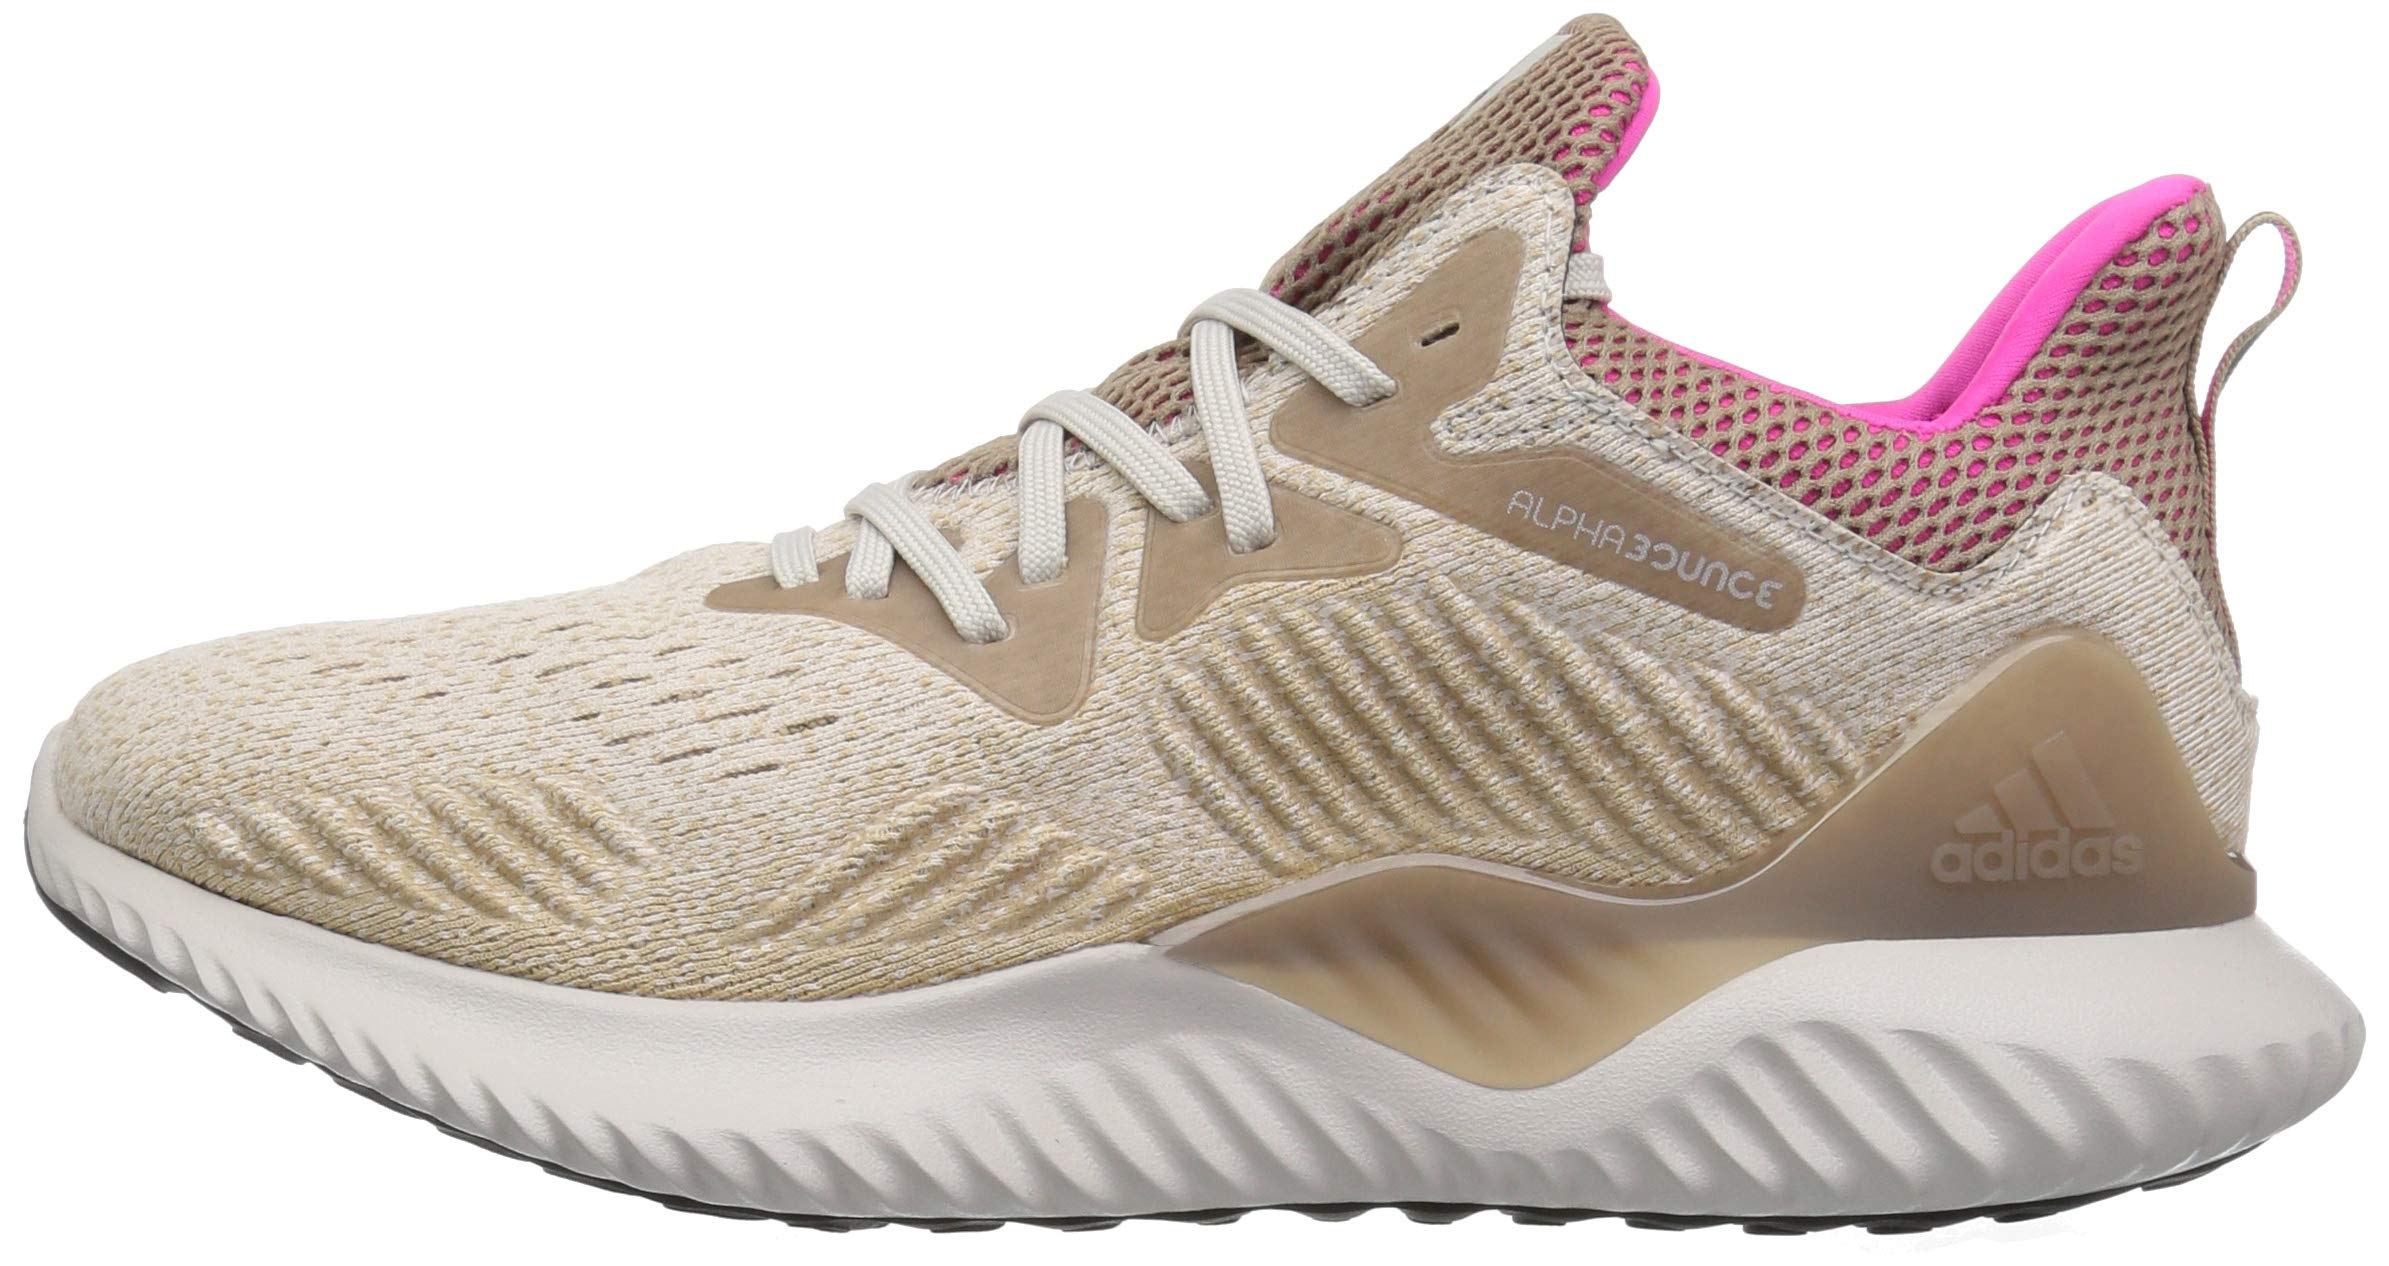 adidas Men's Alphabounce Beyond Running Shoe, Chalk Pearl/Shock Pink/Trace Khaki, 7.5 M US by adidas (Image #5)